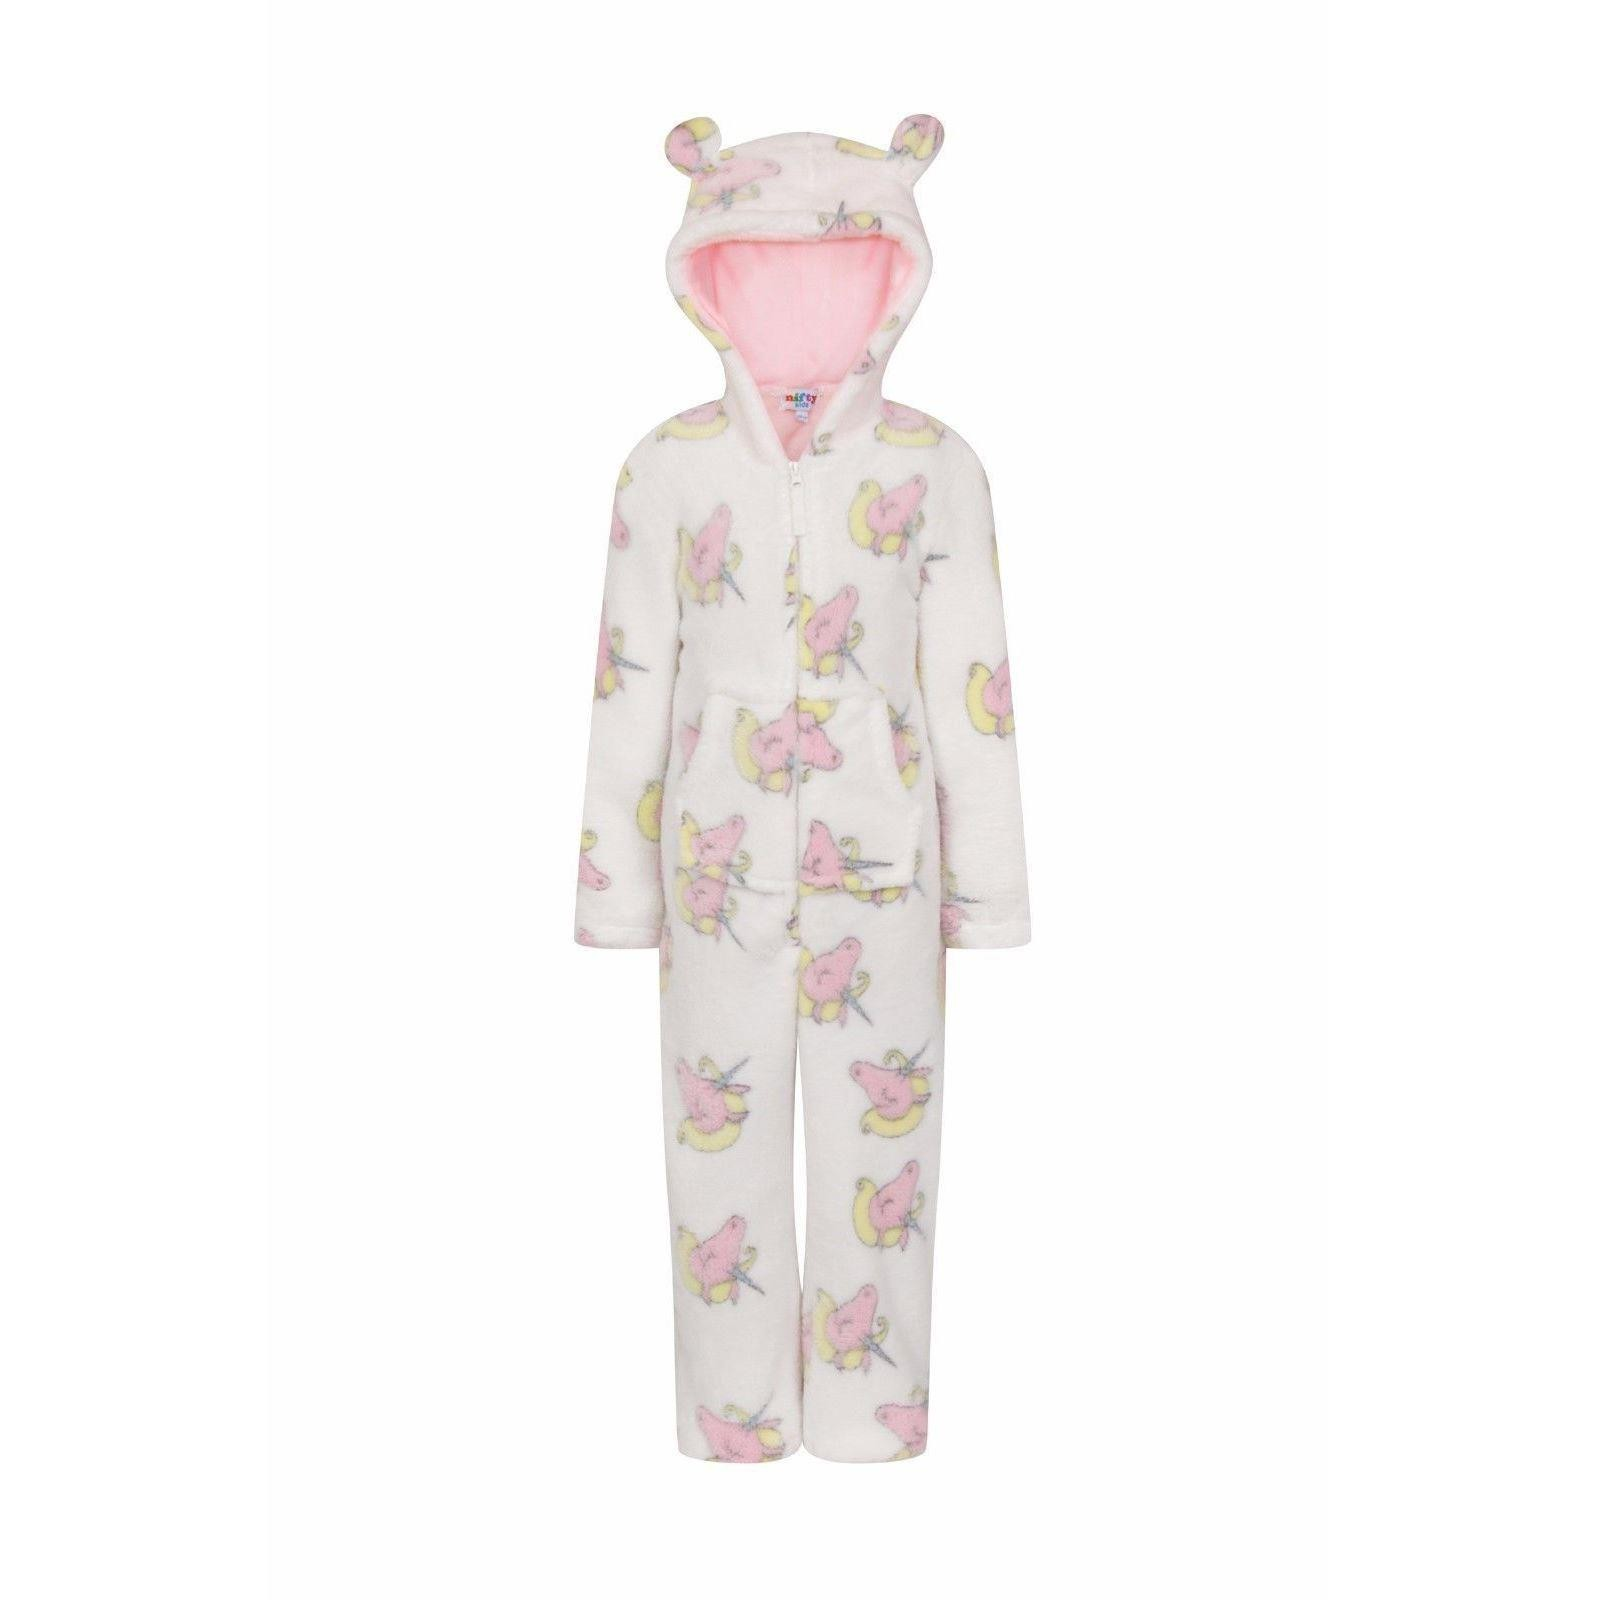 Nifty Kids Unicorn Print Fleece Onesie